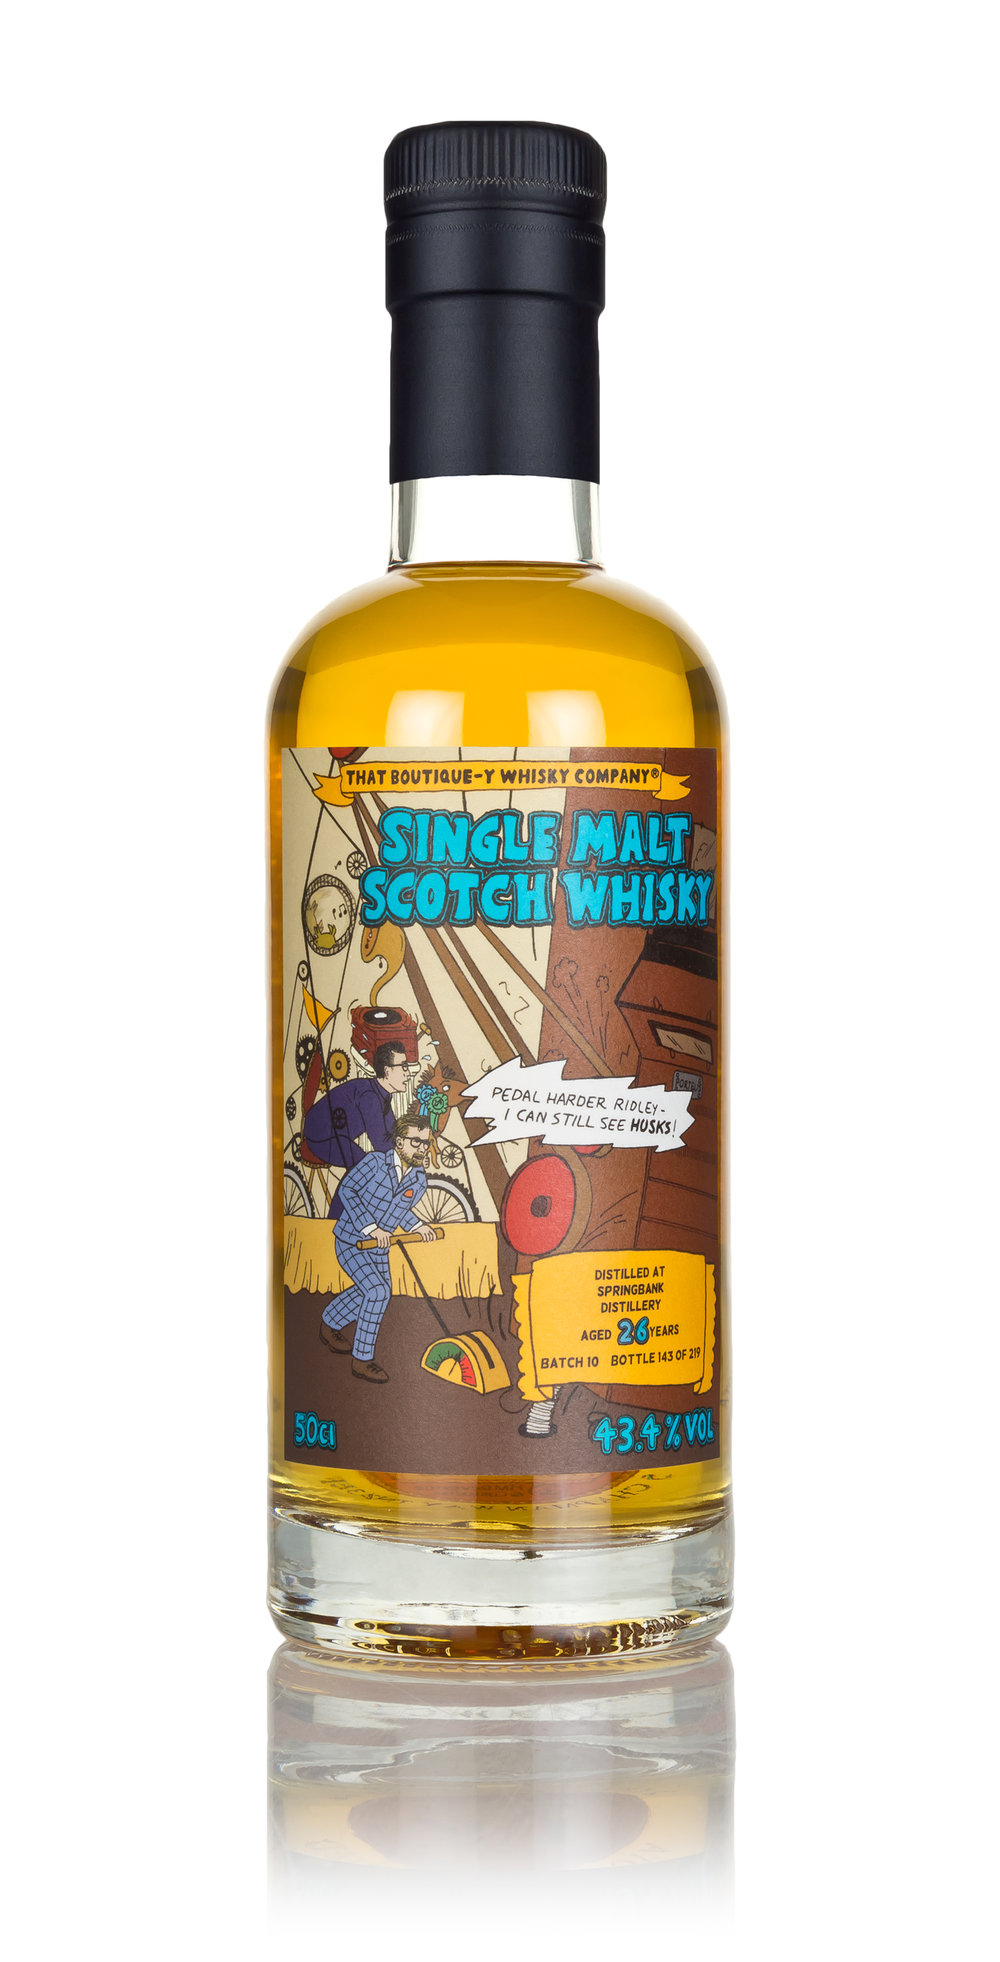 Springbank - Batch 10 - 26 Year Old (That Boutique-y Whisky Company).jpg